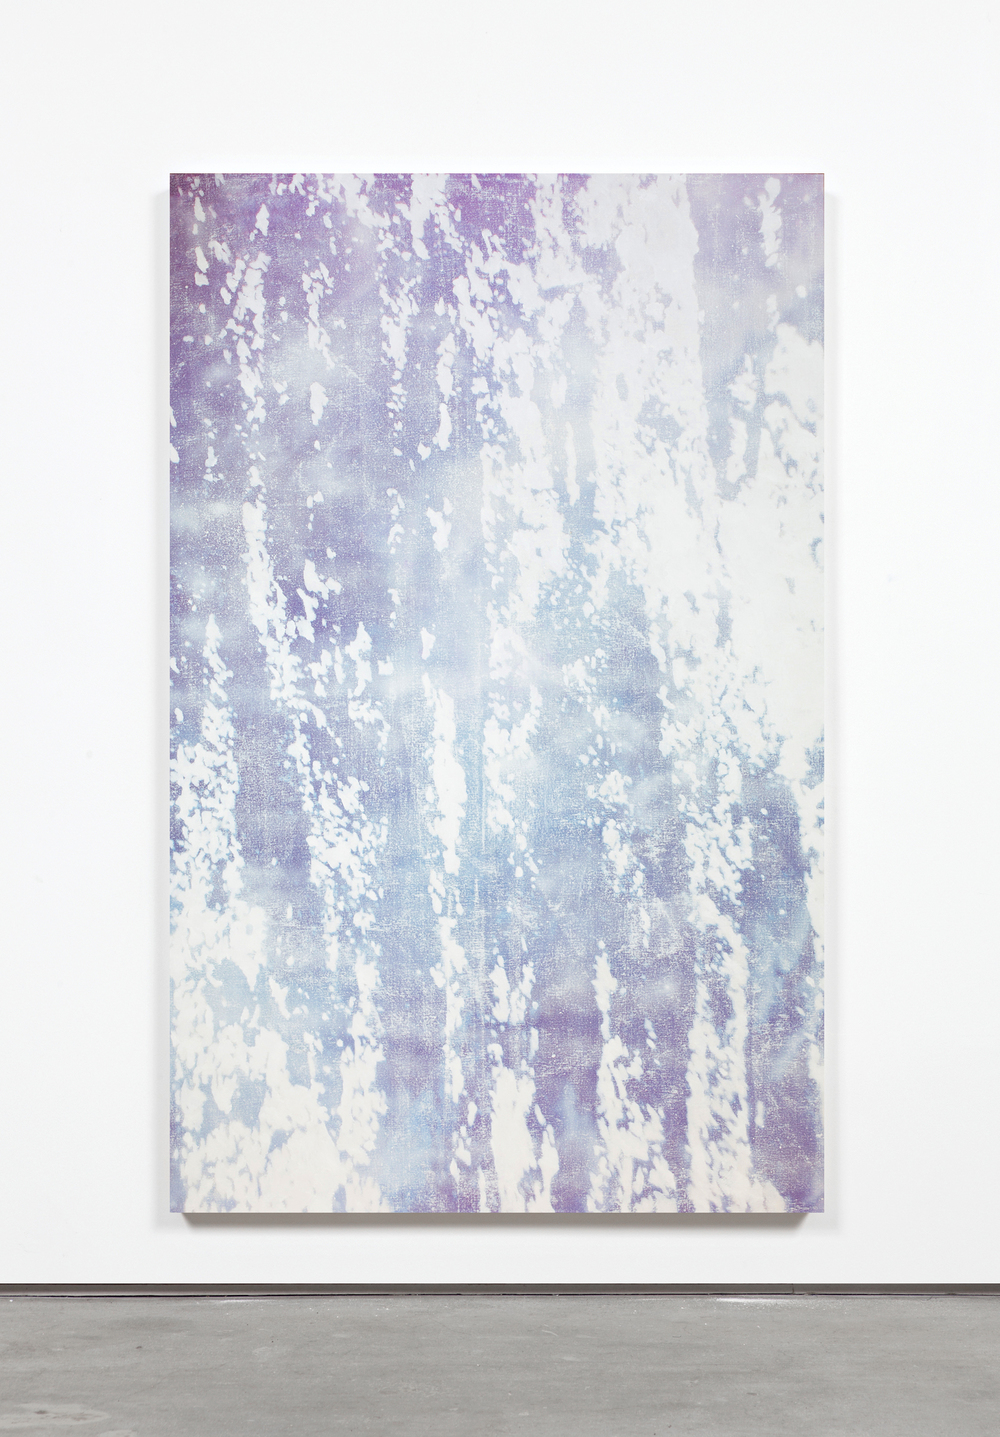 DP1,  2015 Dye, Acrylic, Oil Stick and Spray on canvas, wooden stretchers 180 x 100 cm.